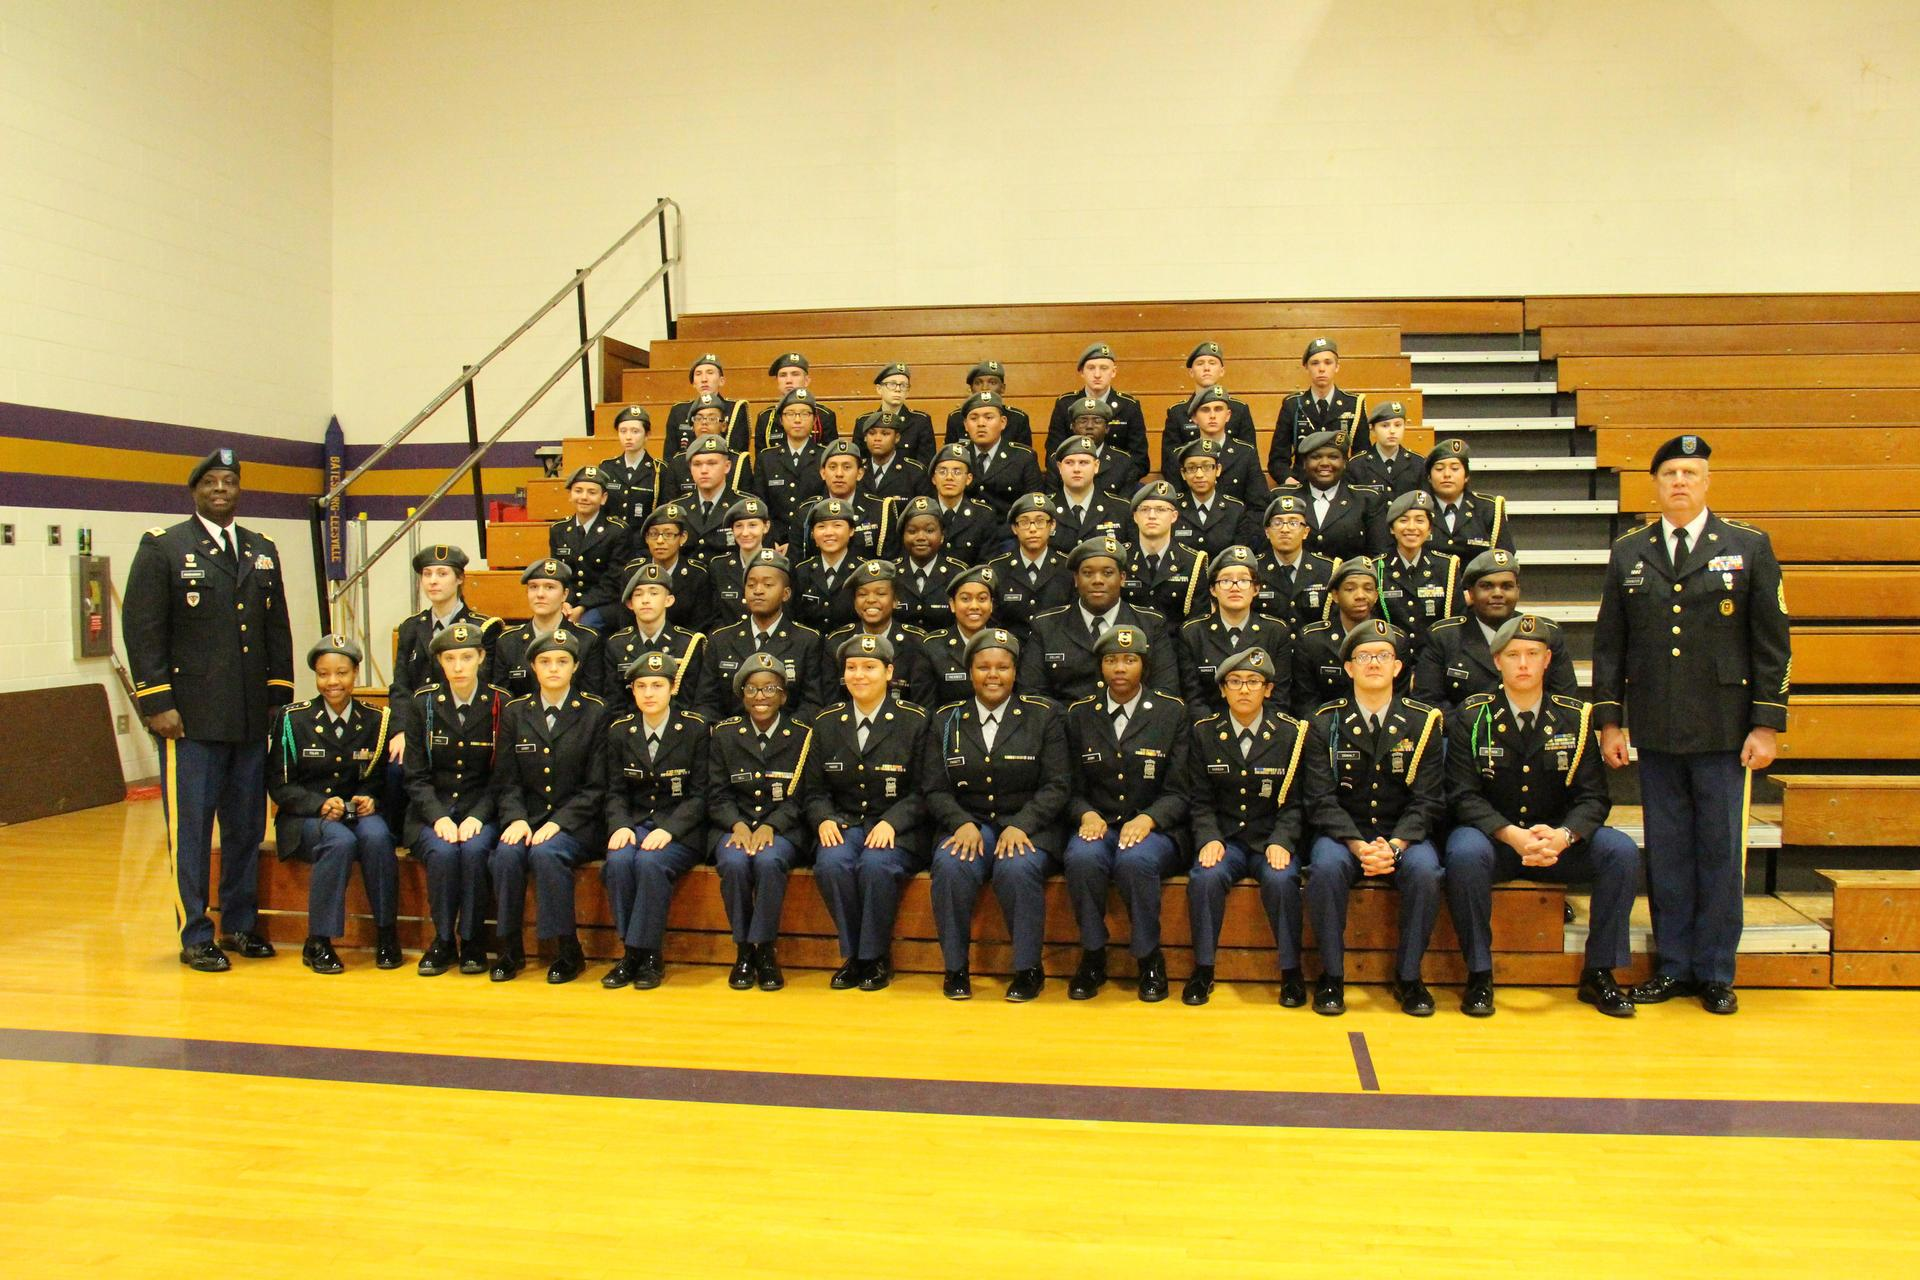 Pictured is the JROTC